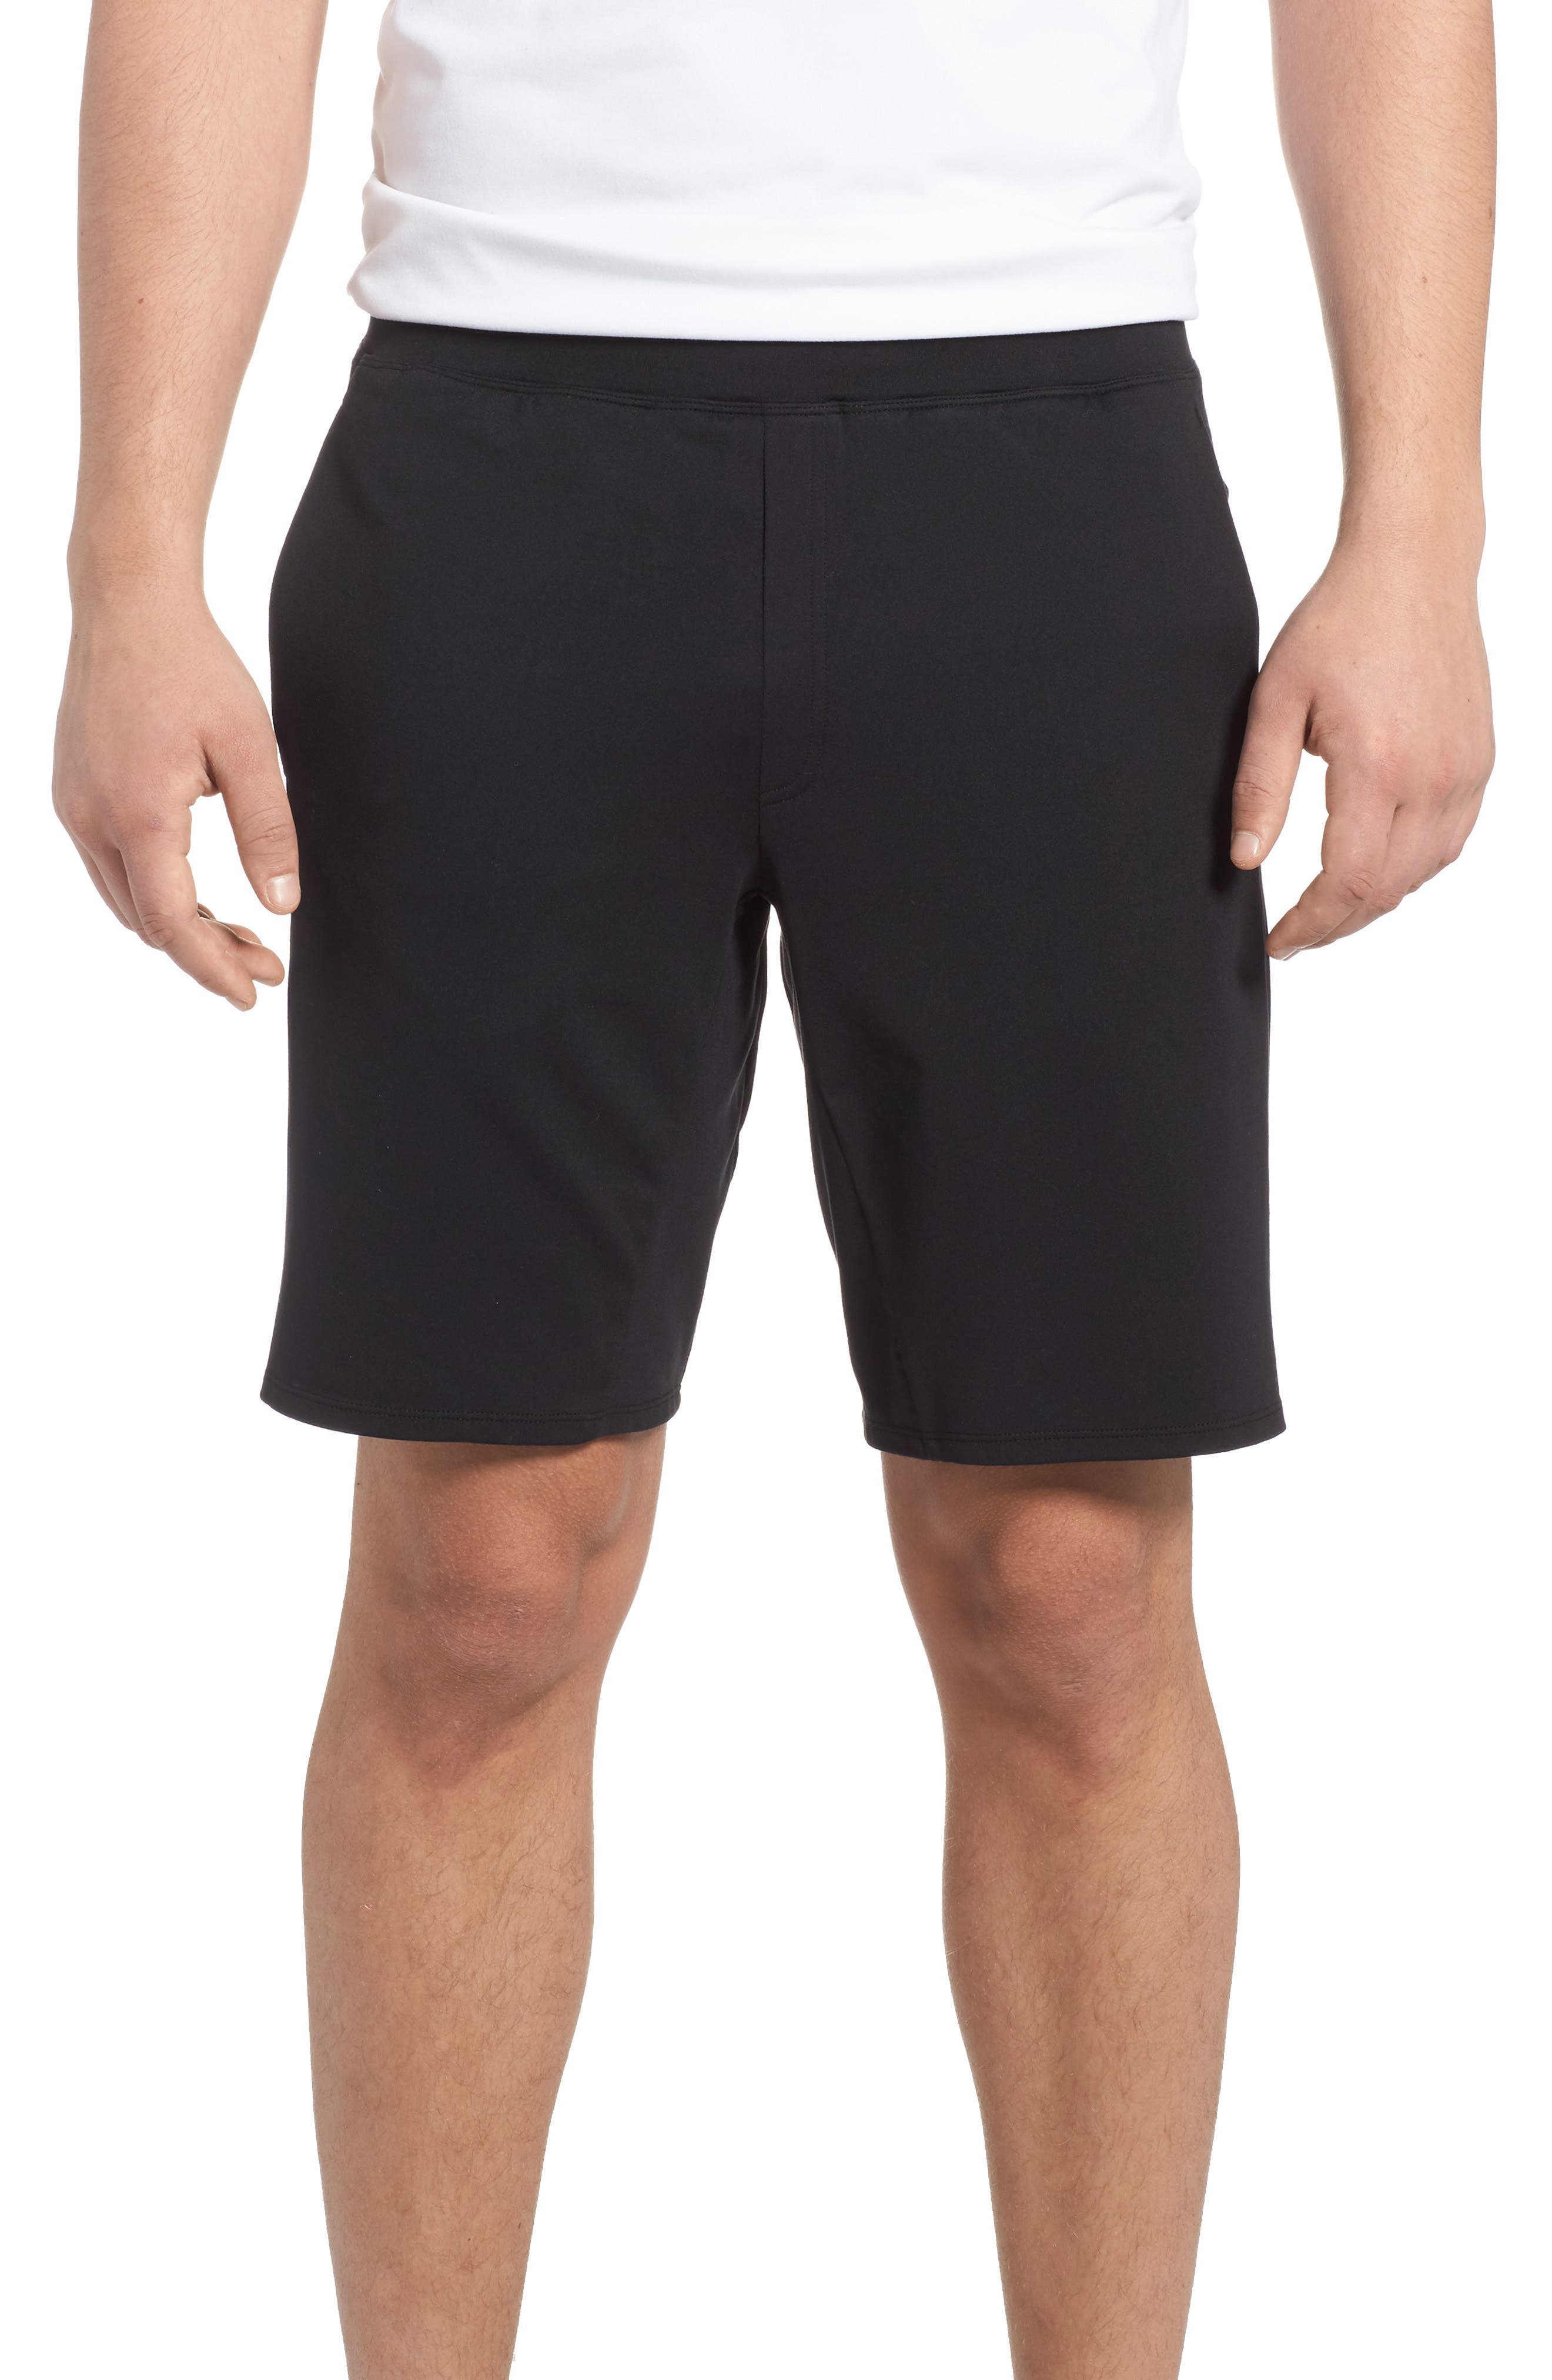 State Athletic Shorts,                         Main,                         color, 001